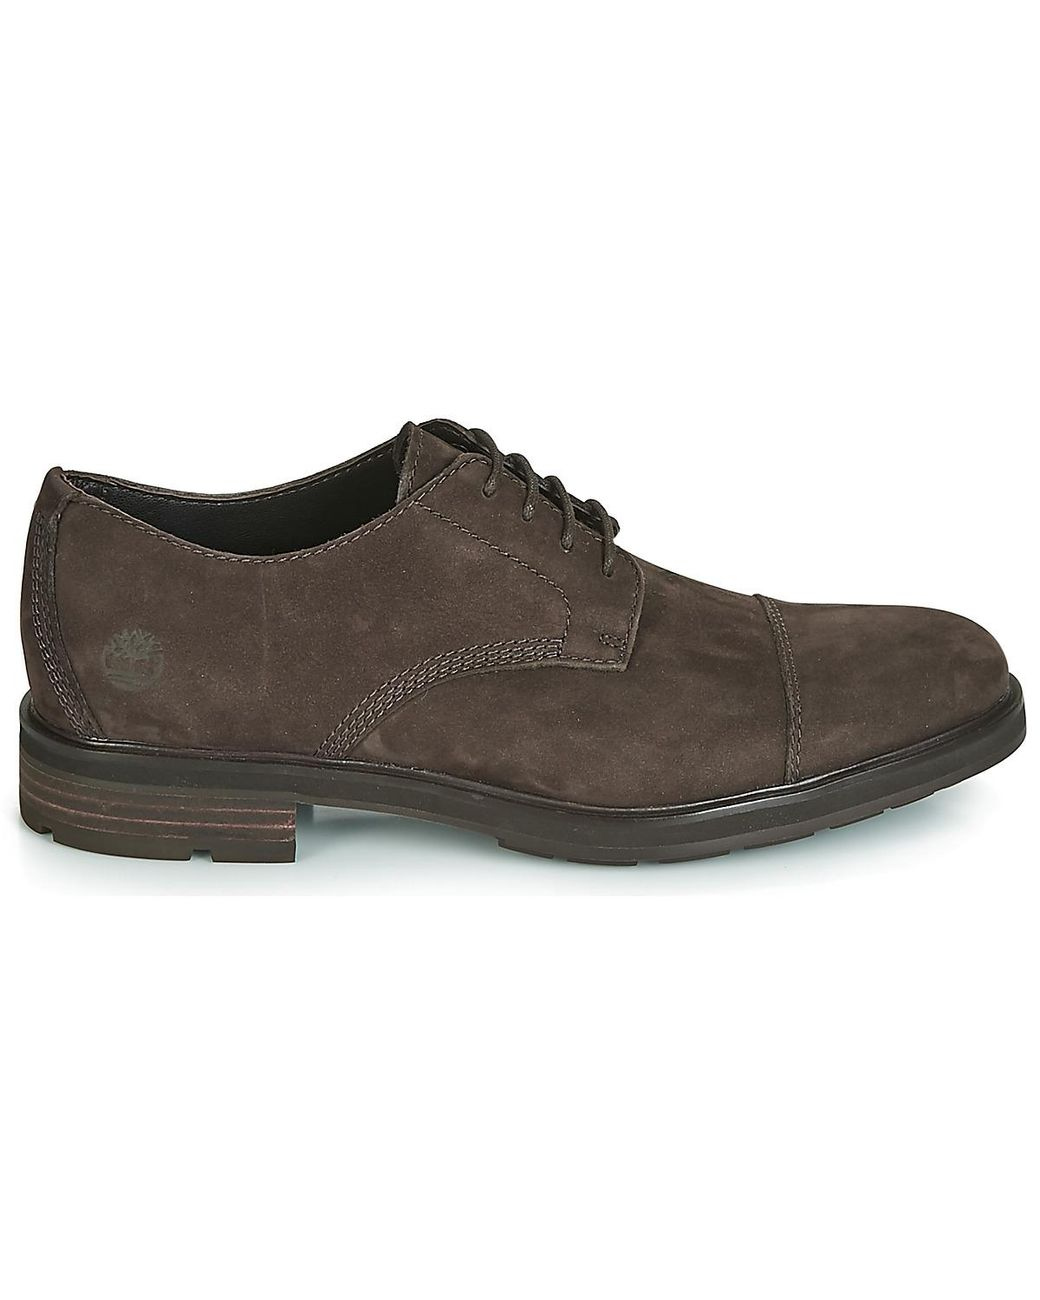 c696c7e4205 Windbucks Pt Ox Men's Casual Shoes In Brown